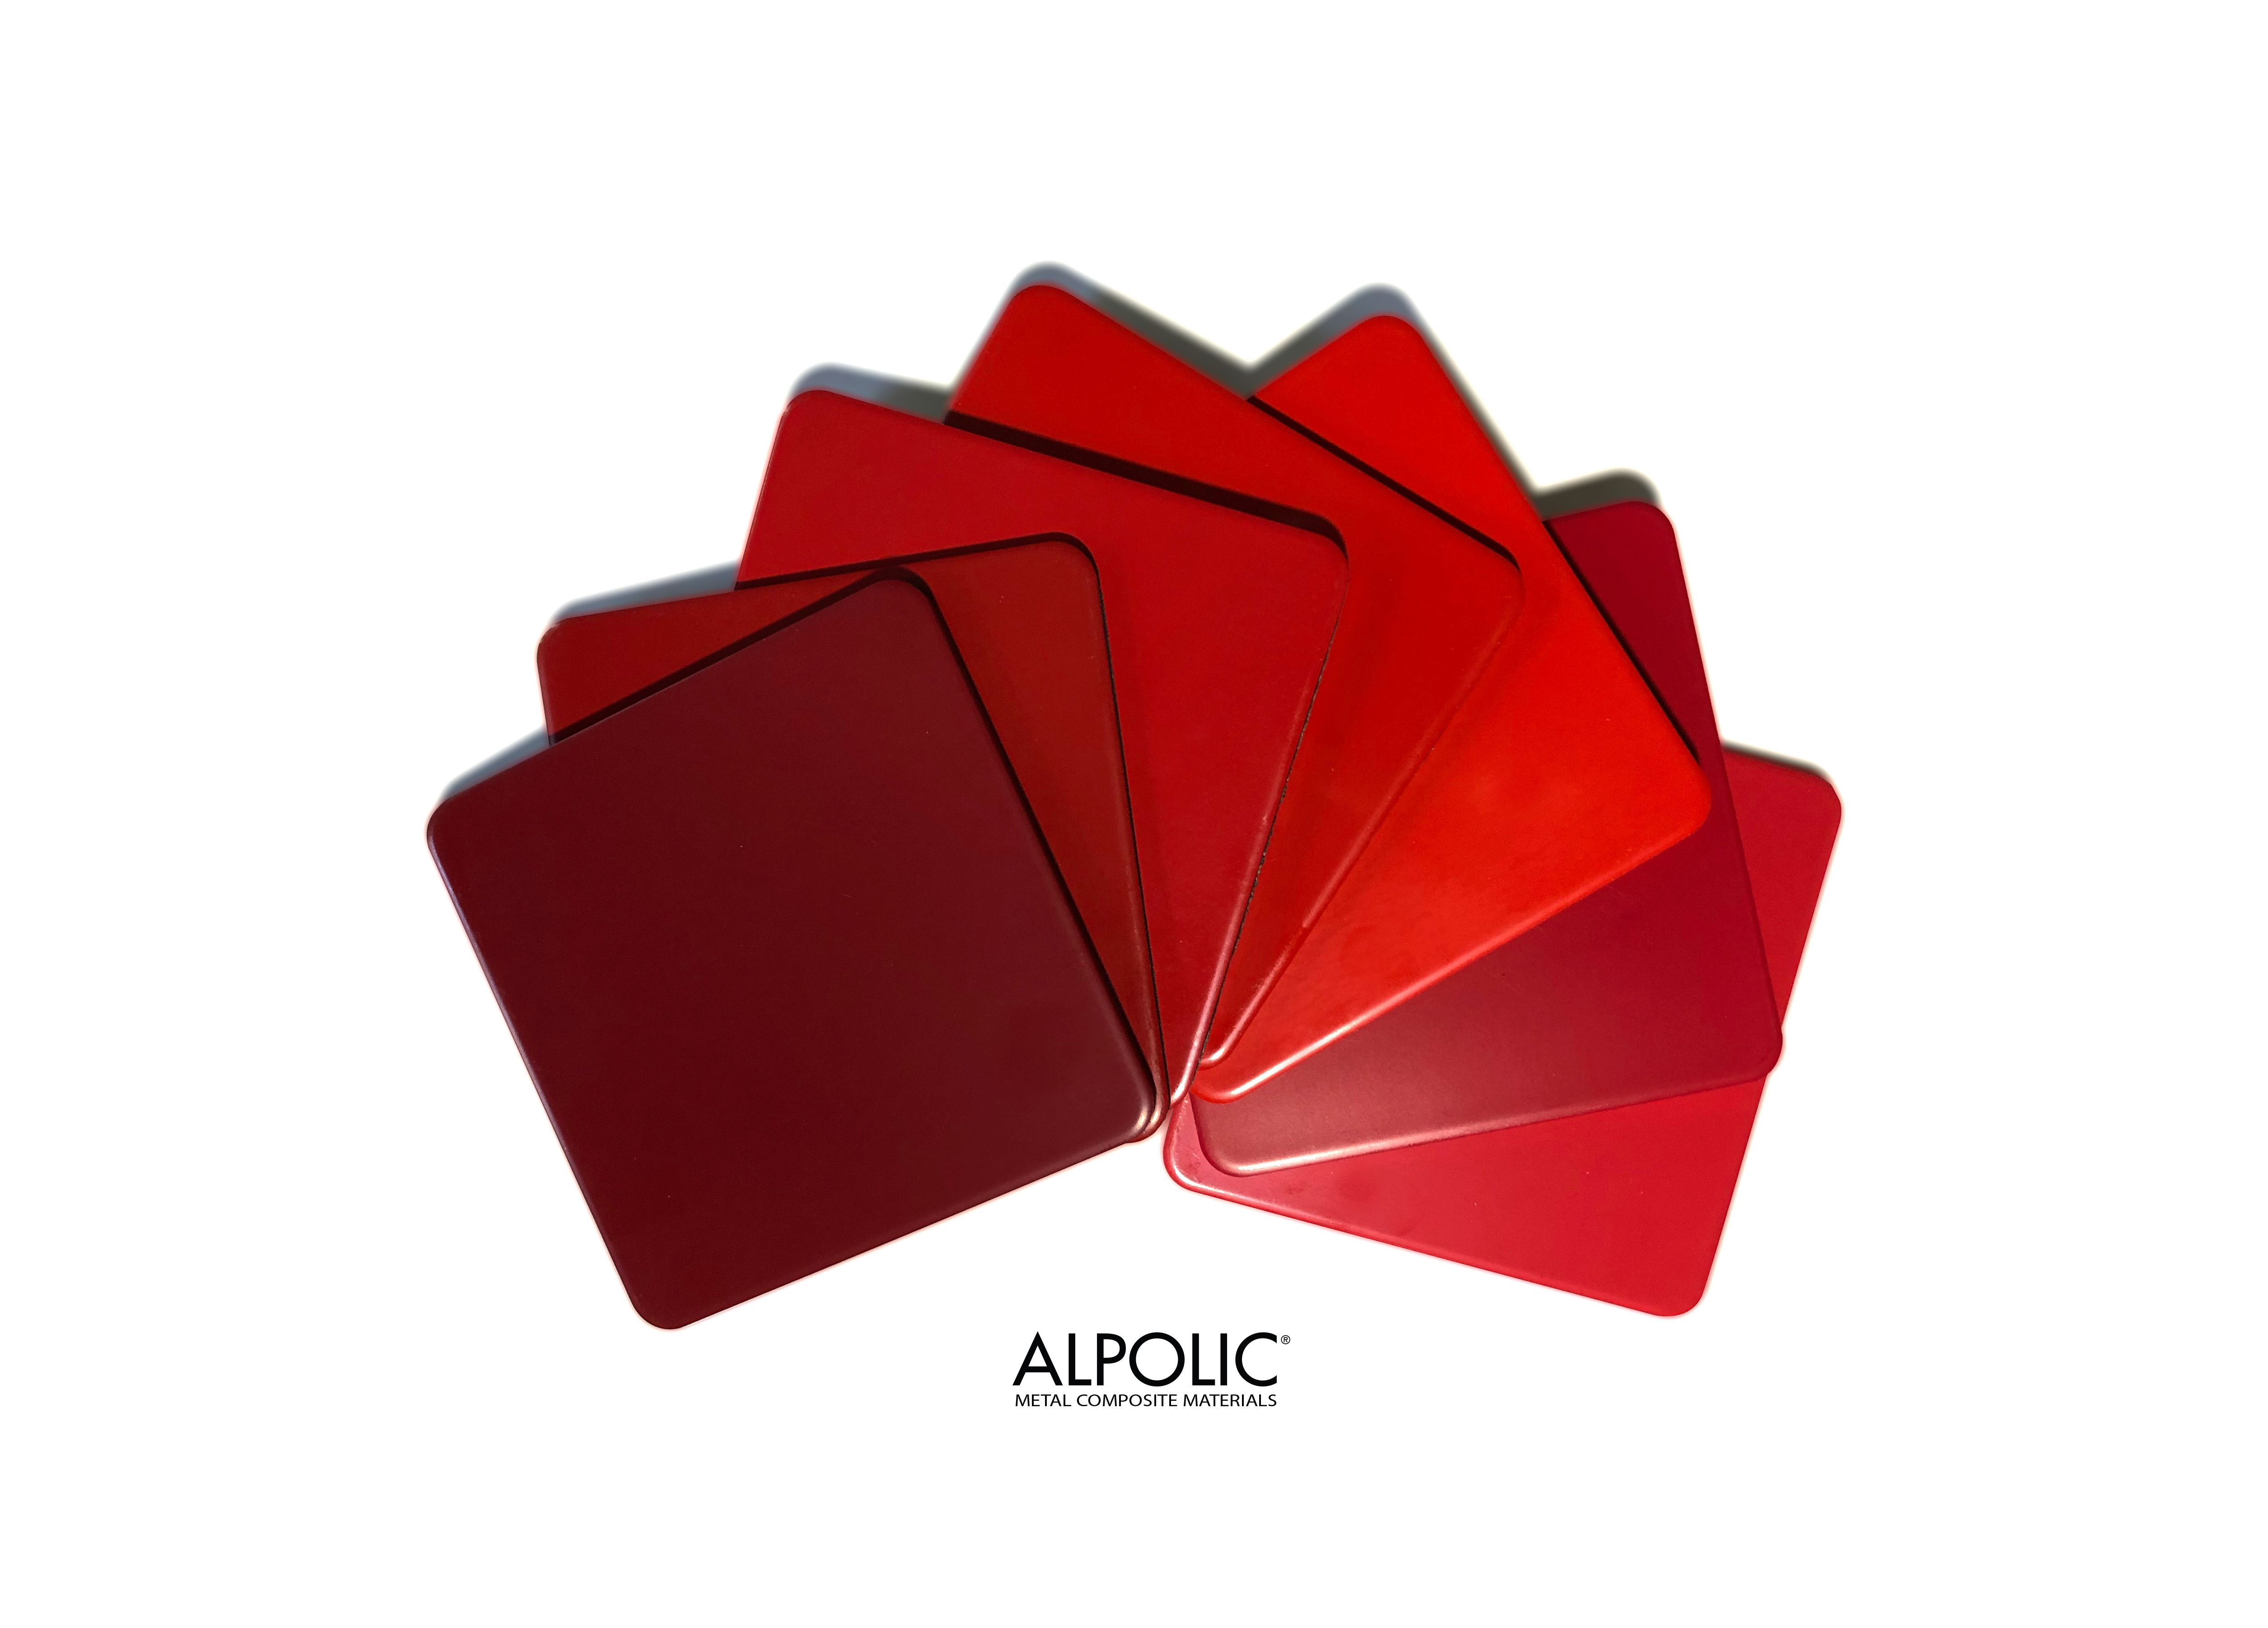 Red Is Not Simply Red at ALPOLIC